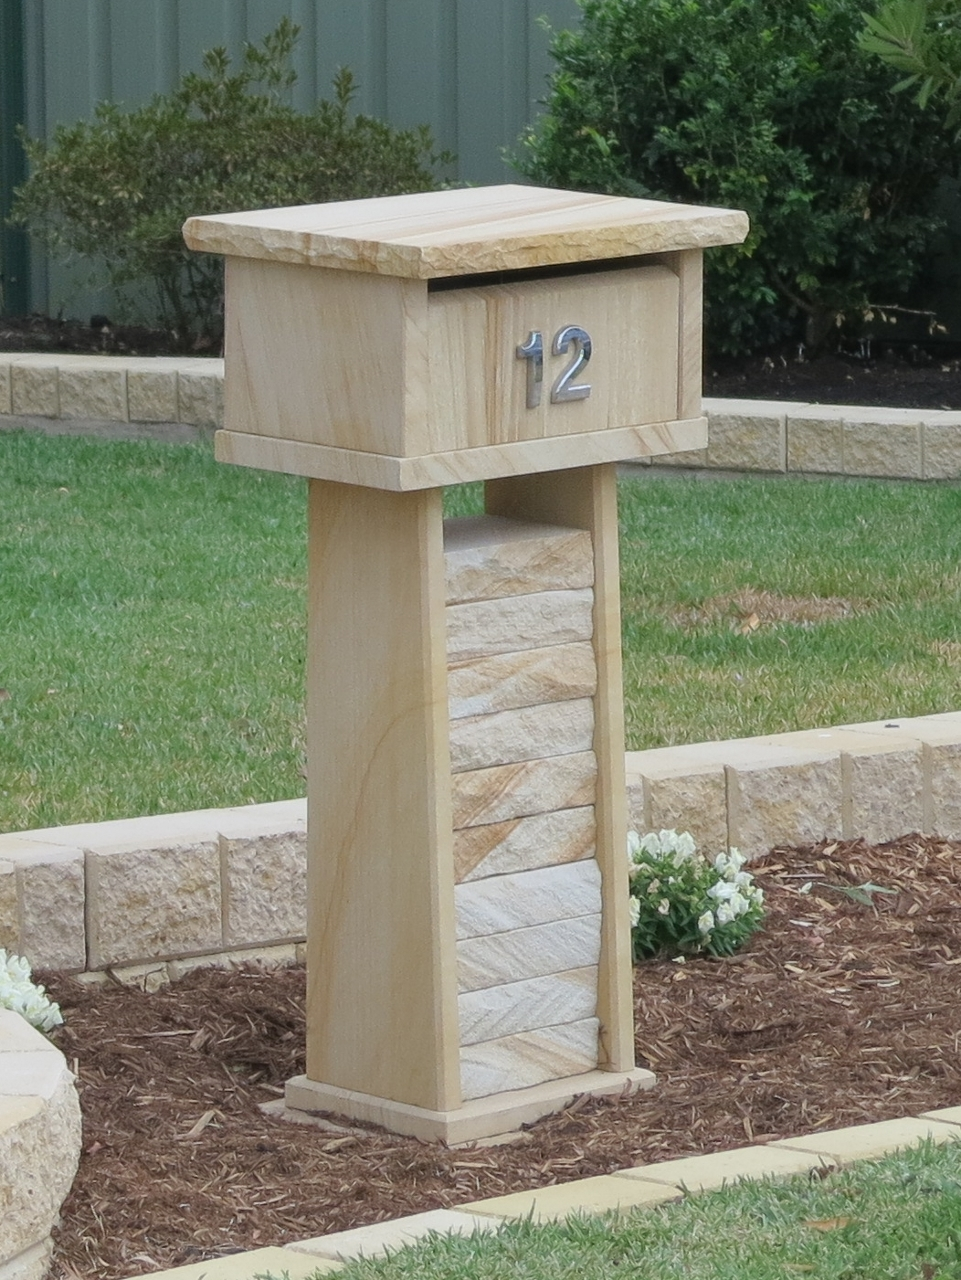 17. Sandstone letterbox 820 high 400x300 $485 (2)